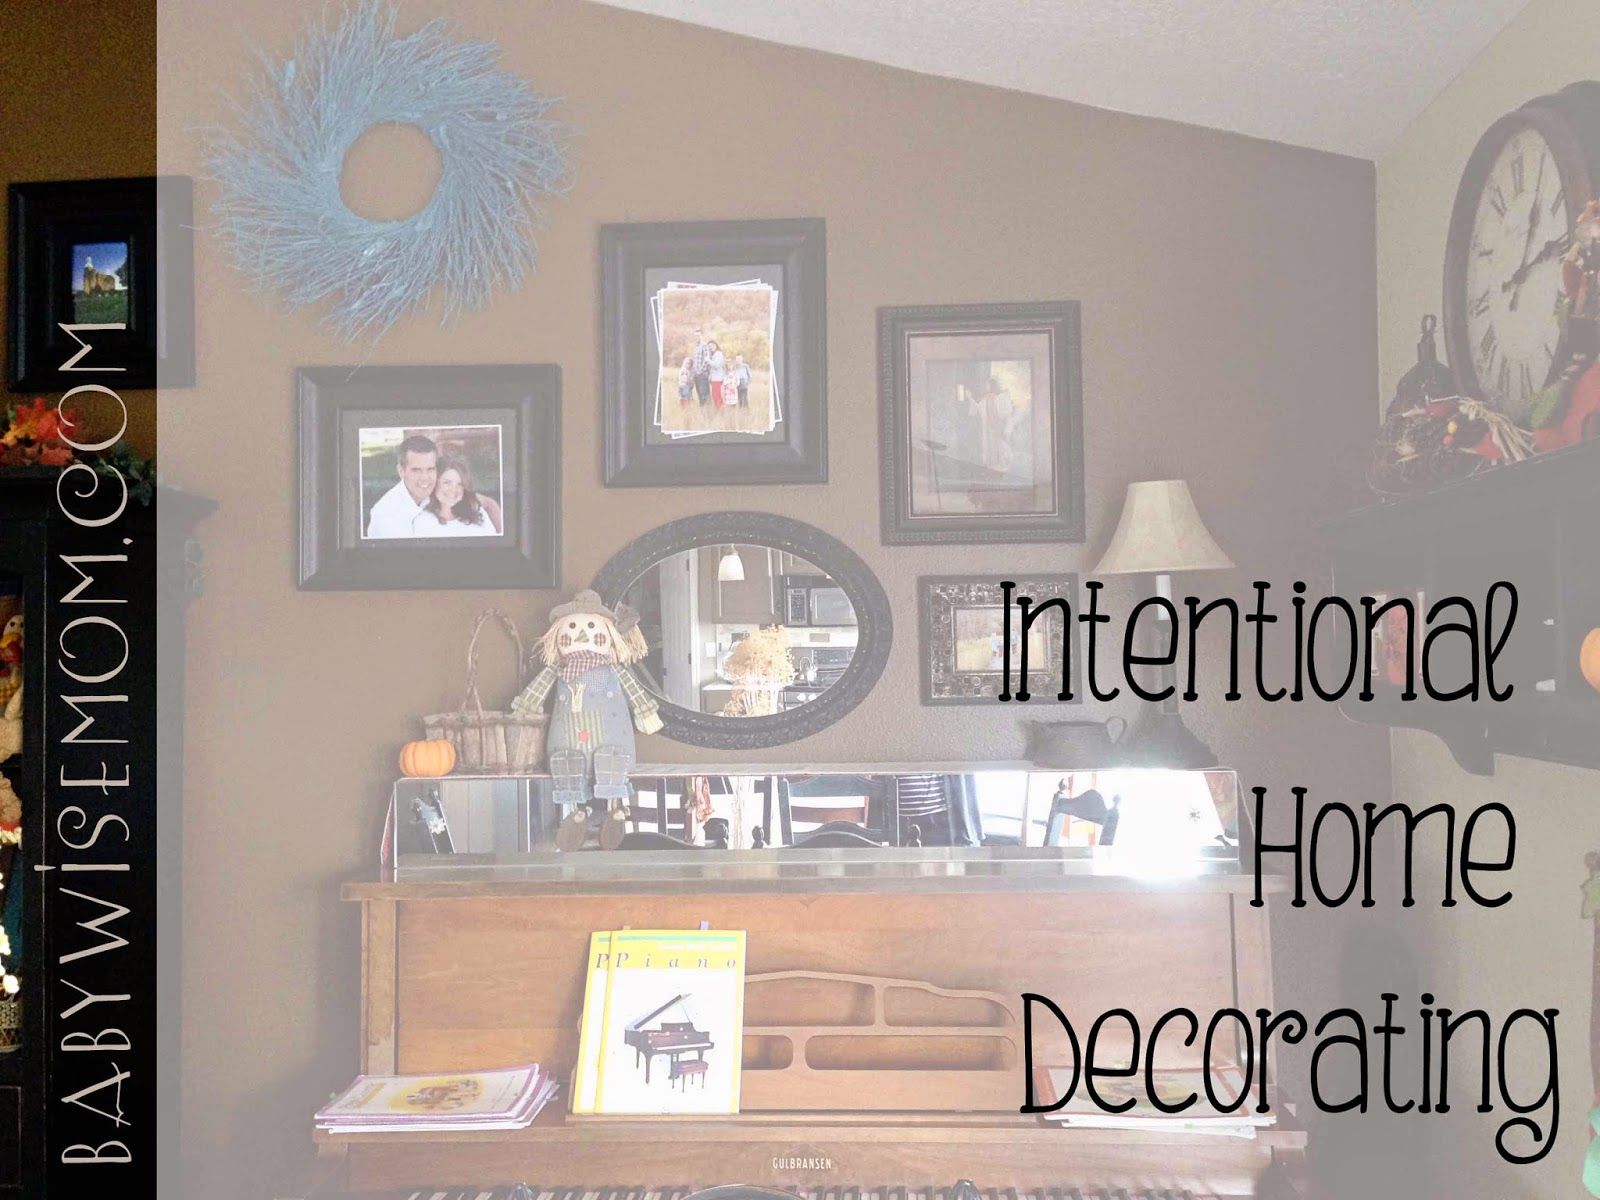 Intentional Home Decorating To Teach Children